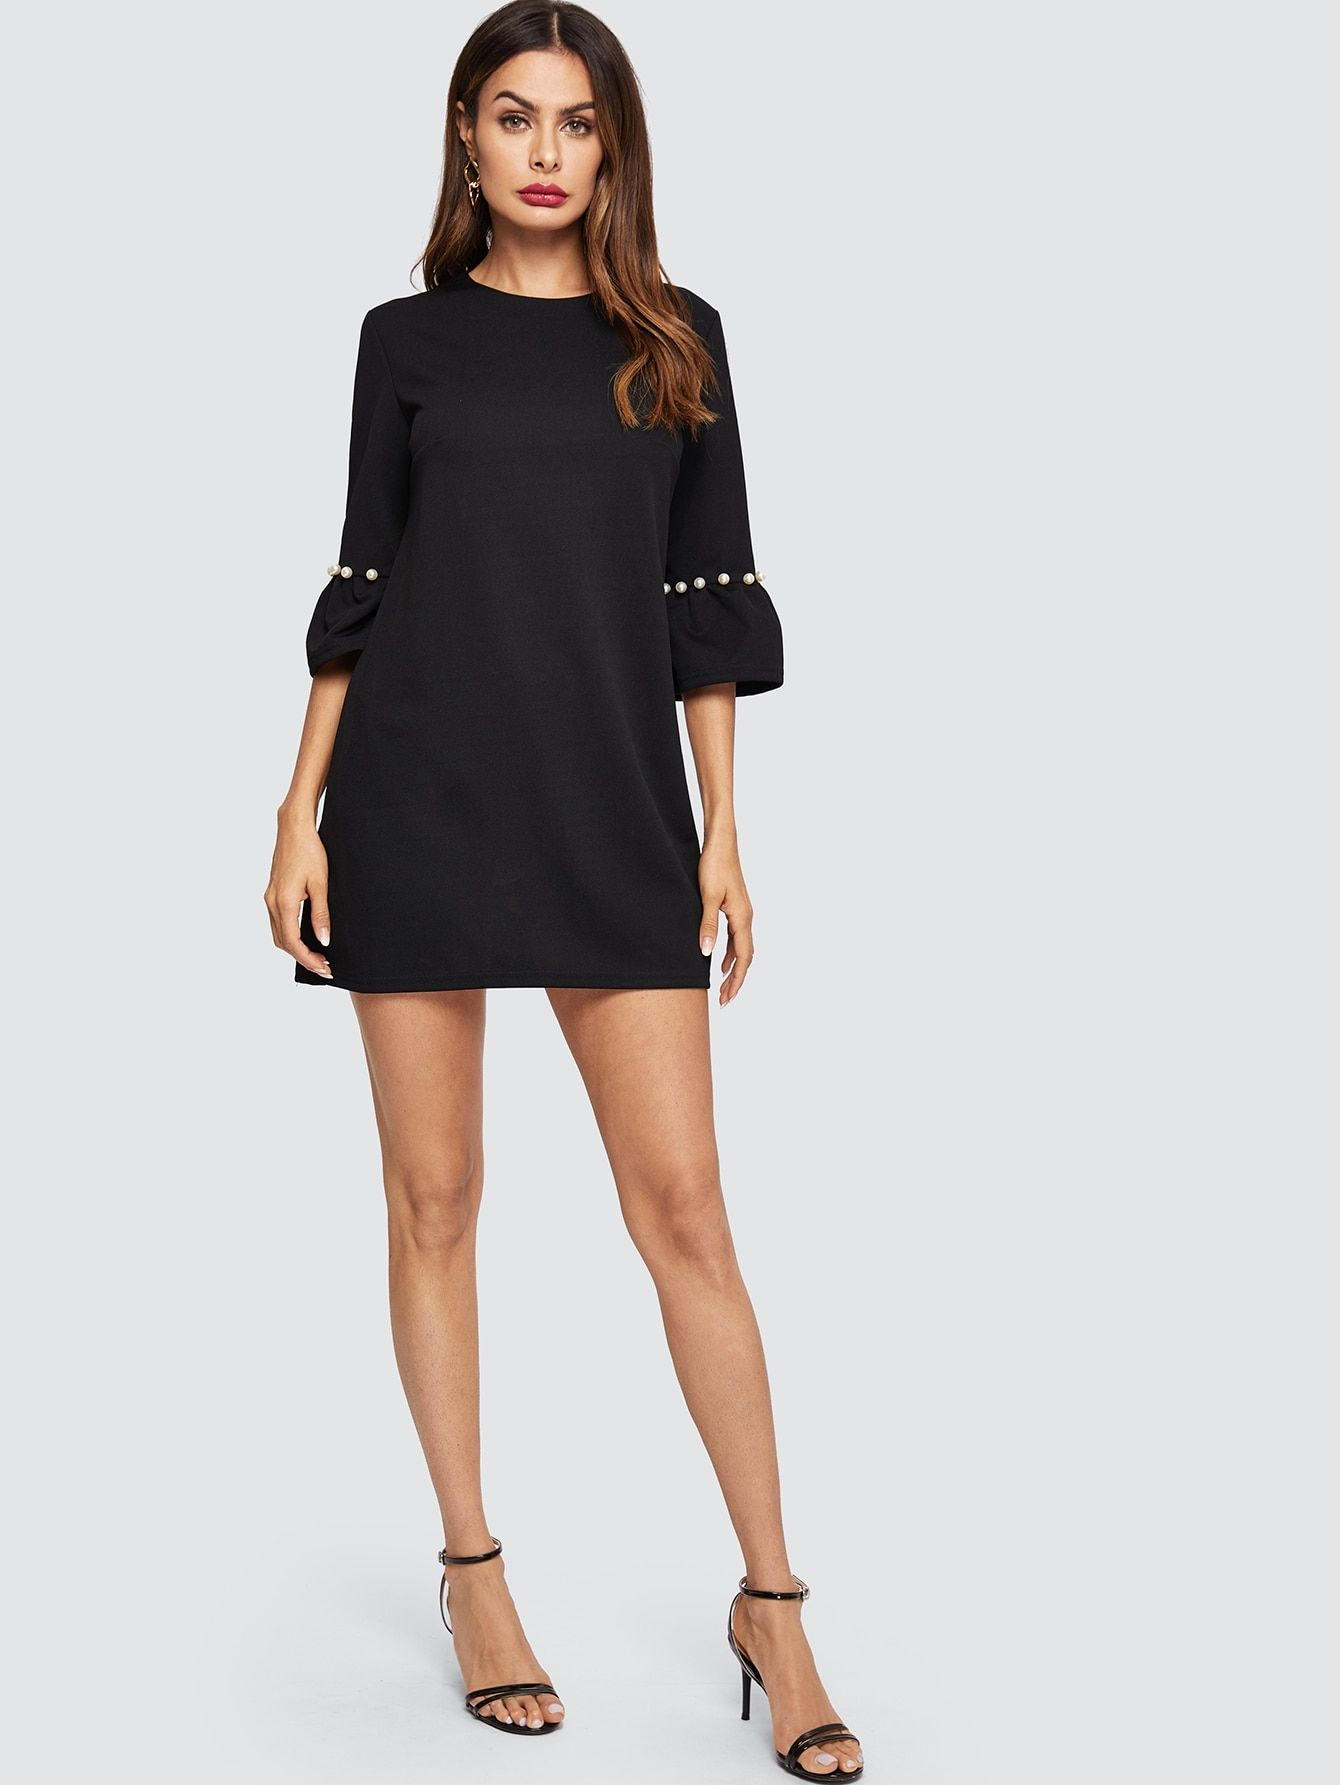 ee040a032b52 Elegant Tunic Pearls and Beaded and Zipper Plaid Sheath Trapeze Round Neck  Three Quarter Length Sleeve Flounce Sleeve Natural Black Short Length Pearl  ...